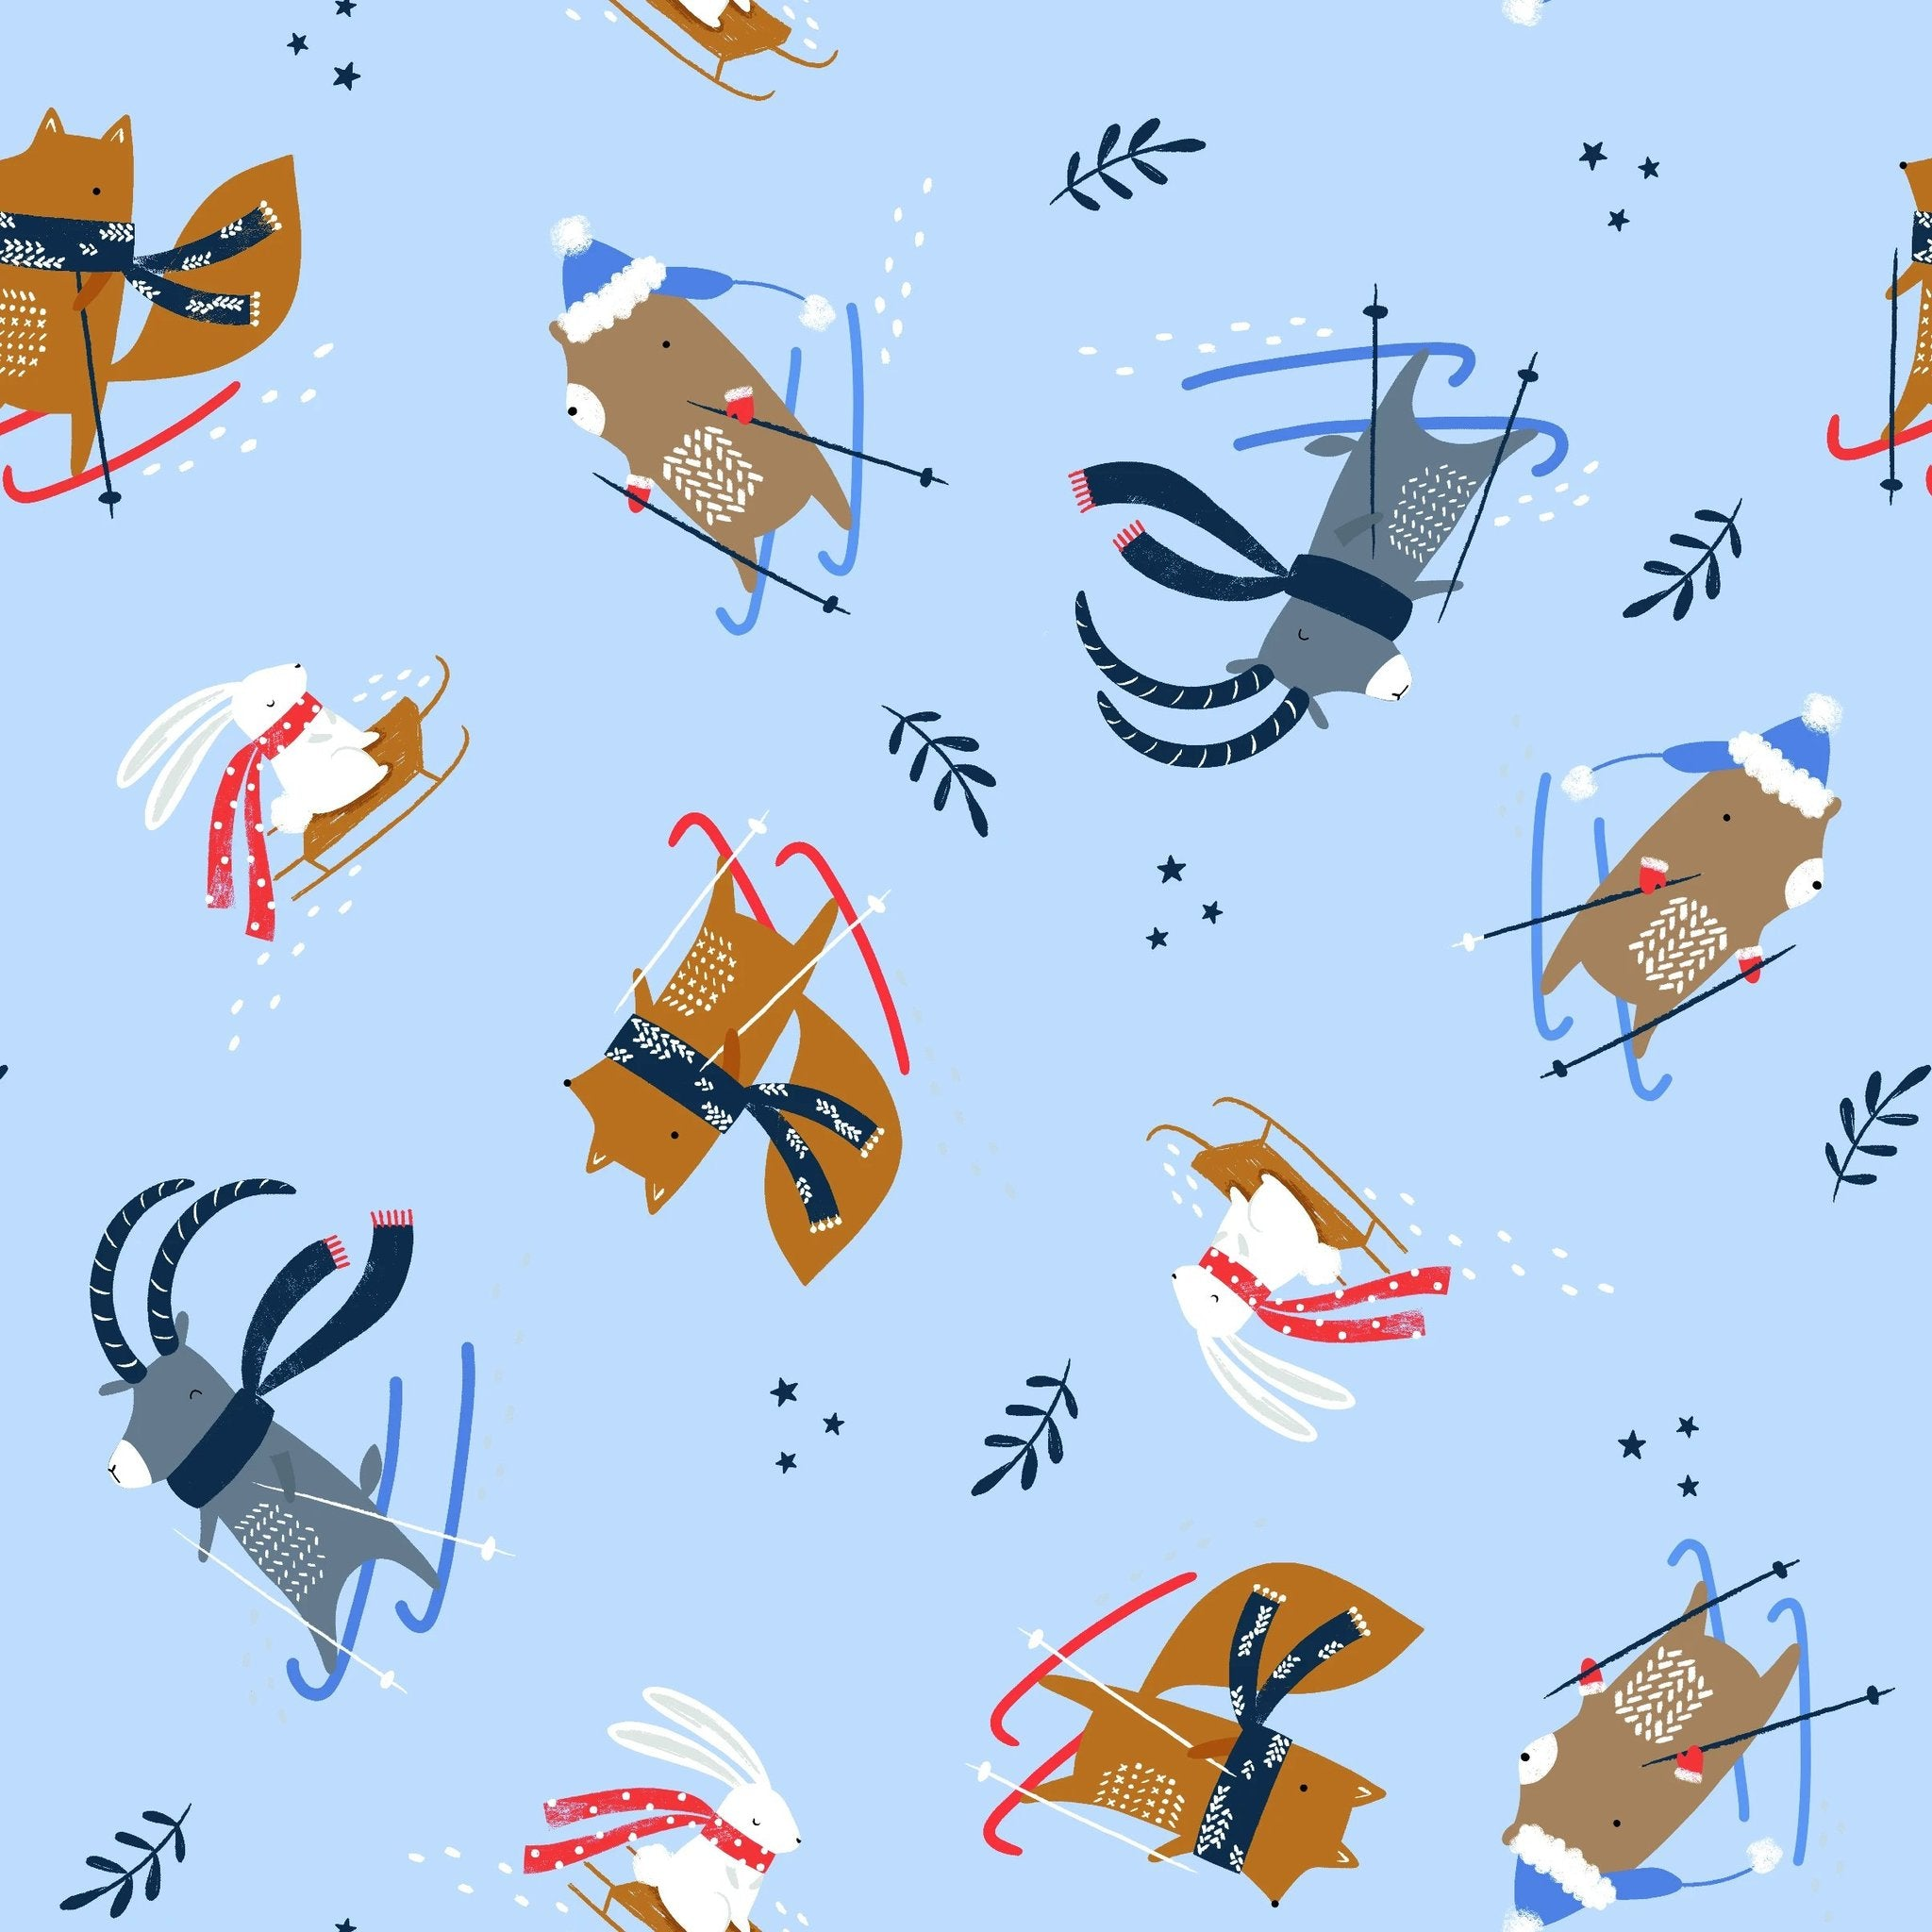 Snow Much Fun - Forest Animals Skiing on Light Blue